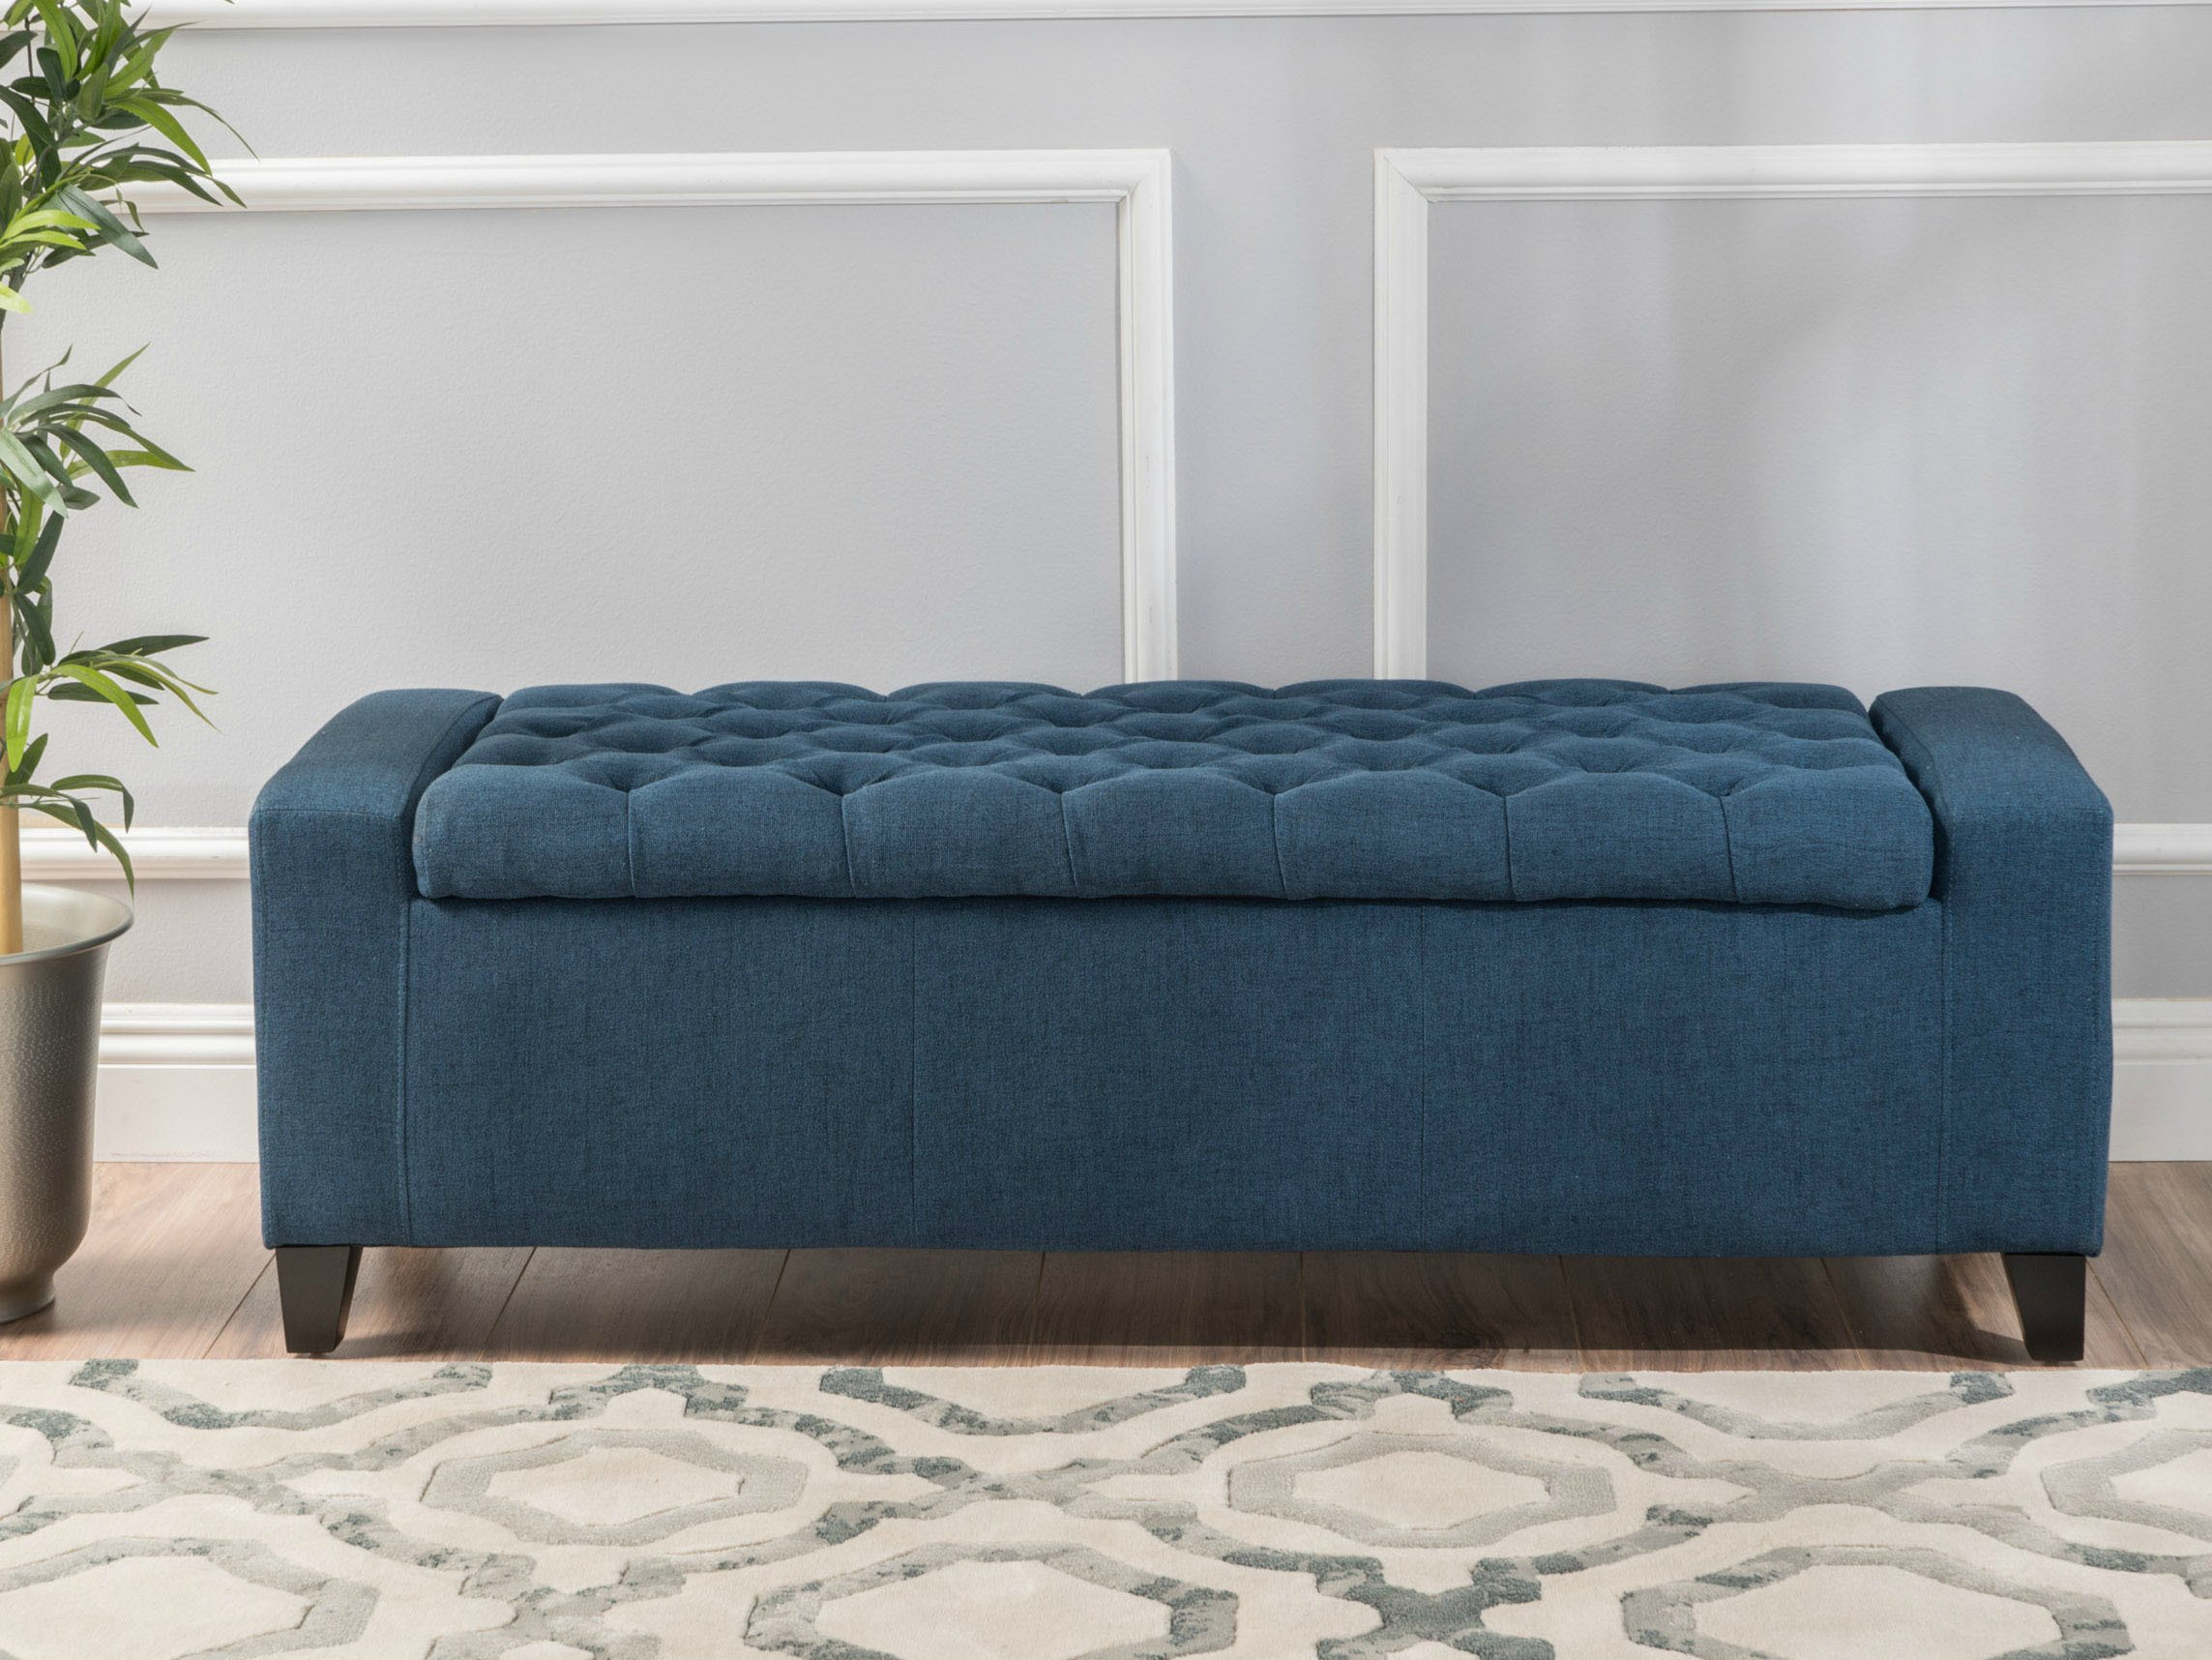 Eco friendly Storage Ottoman Bench Entryway Footstool Button Tufted Chair Blue